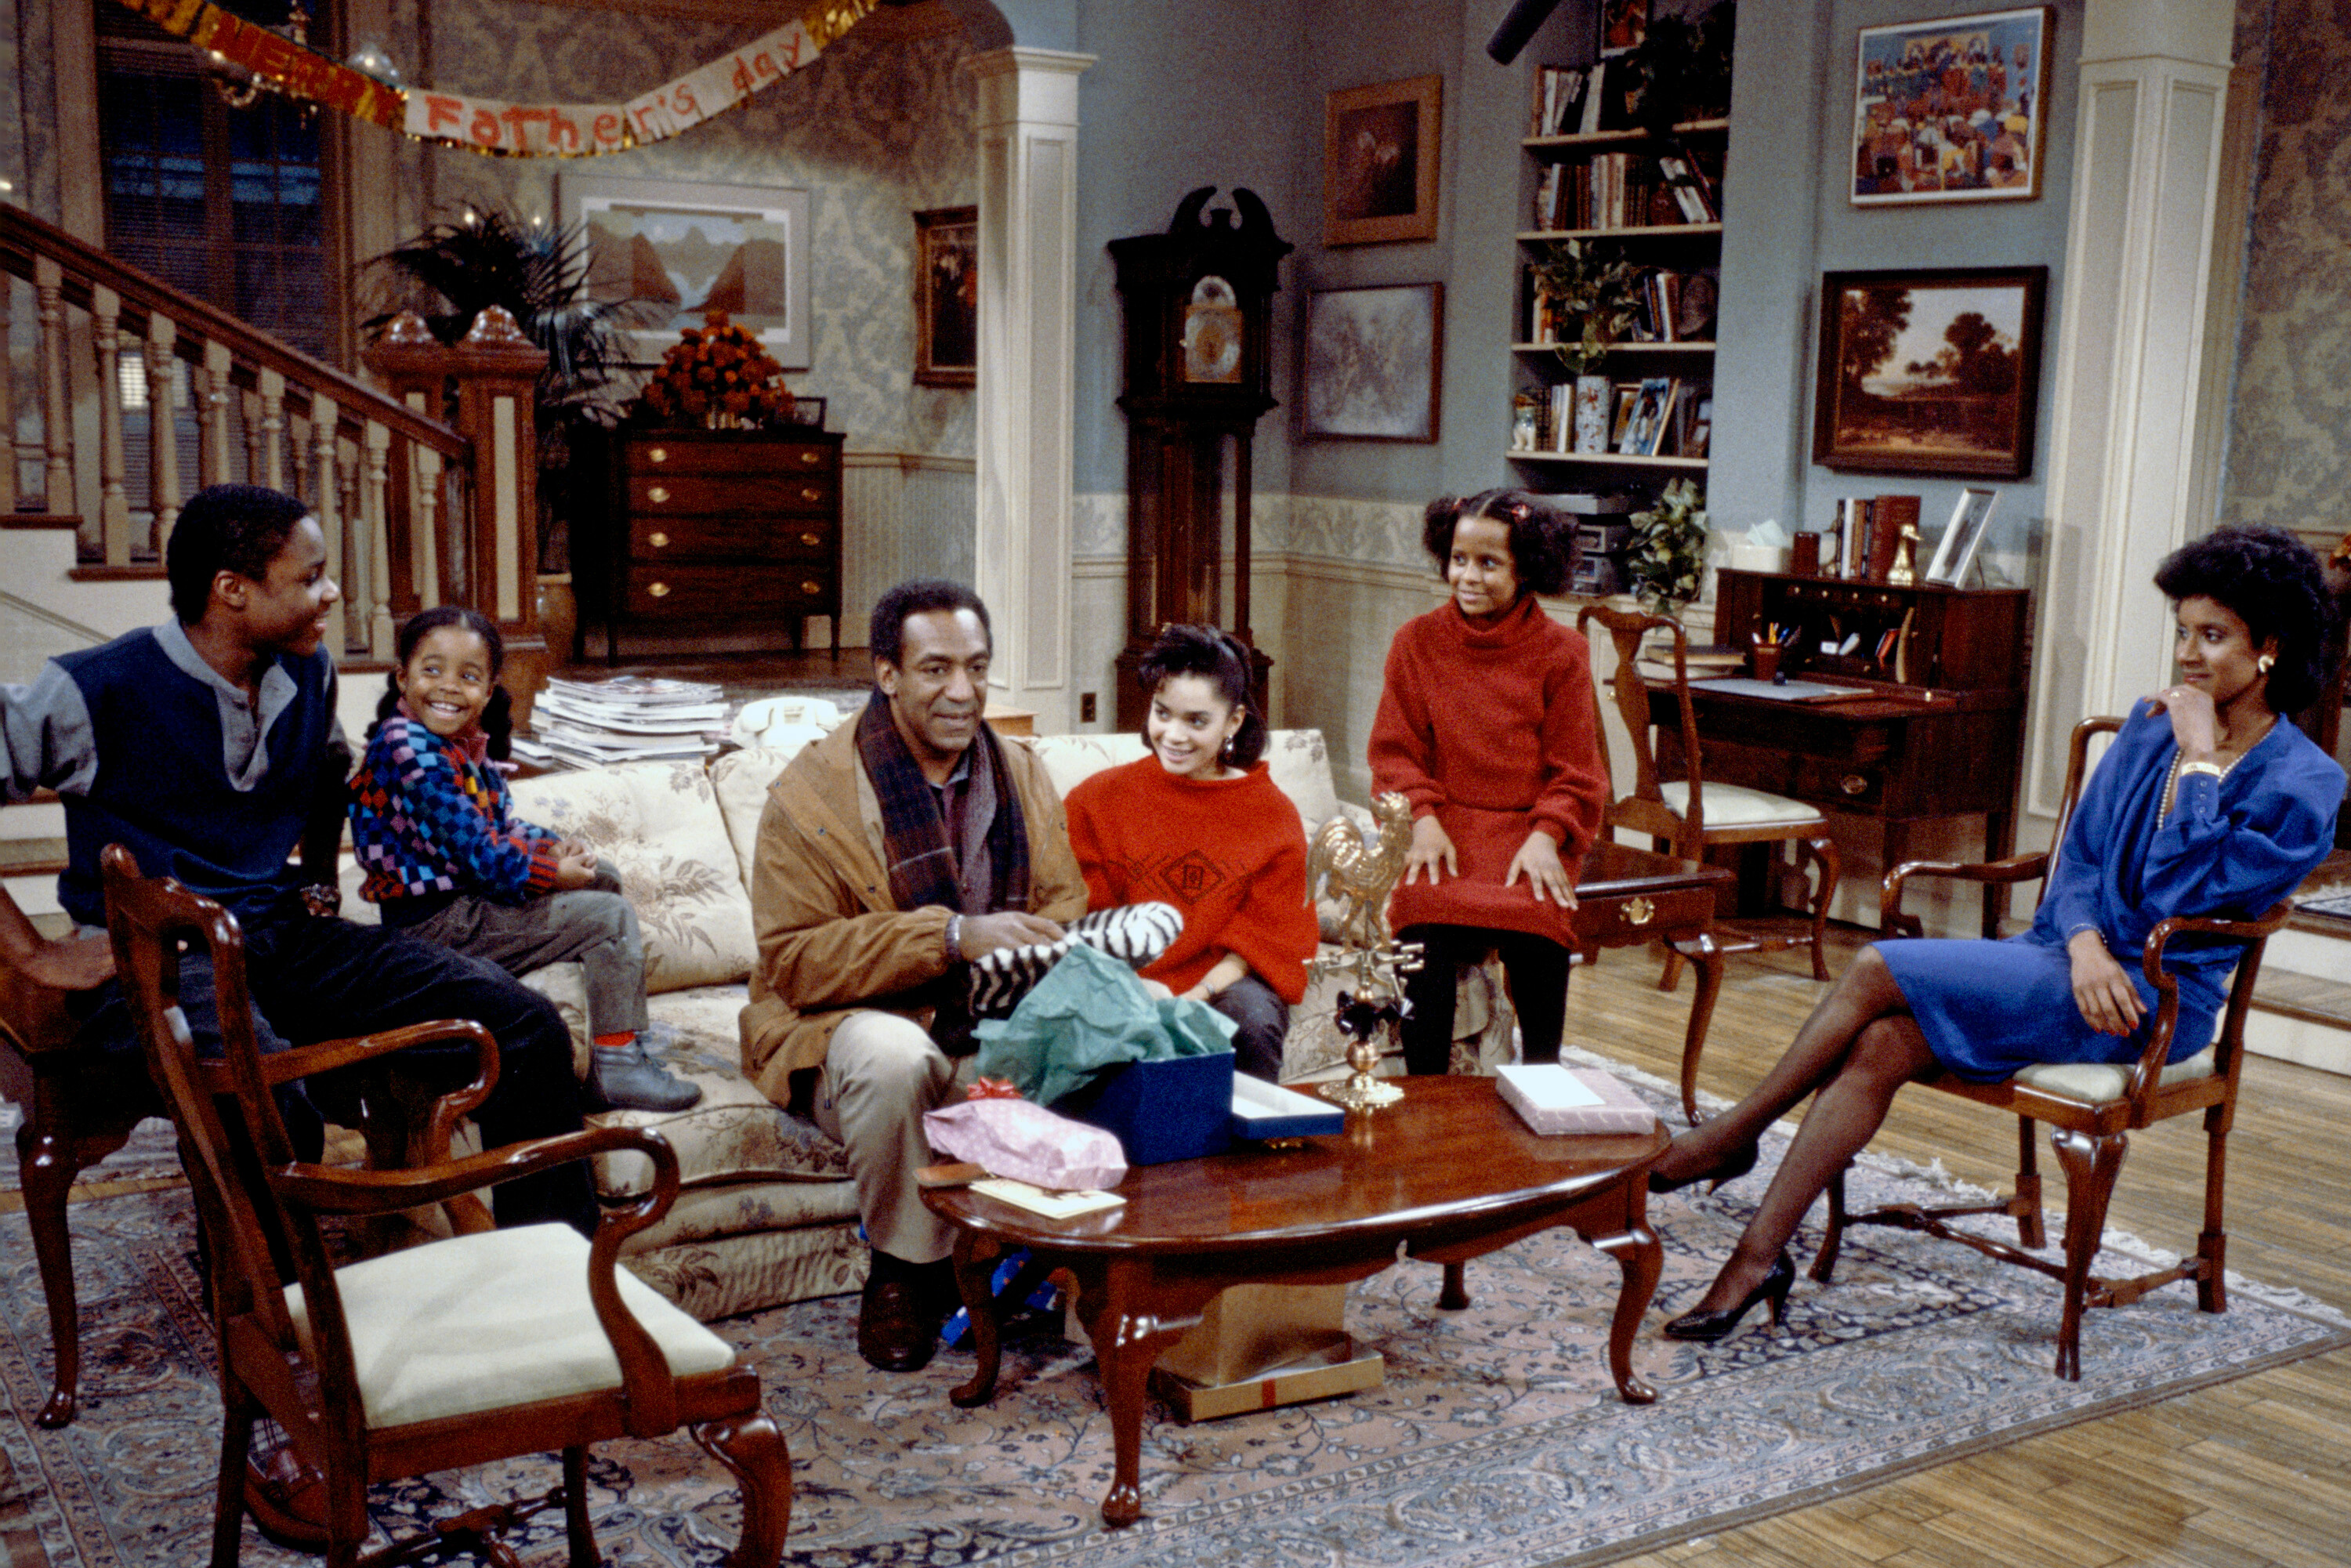 Why you still won't find 'The Cosby Show' on many TV platforms